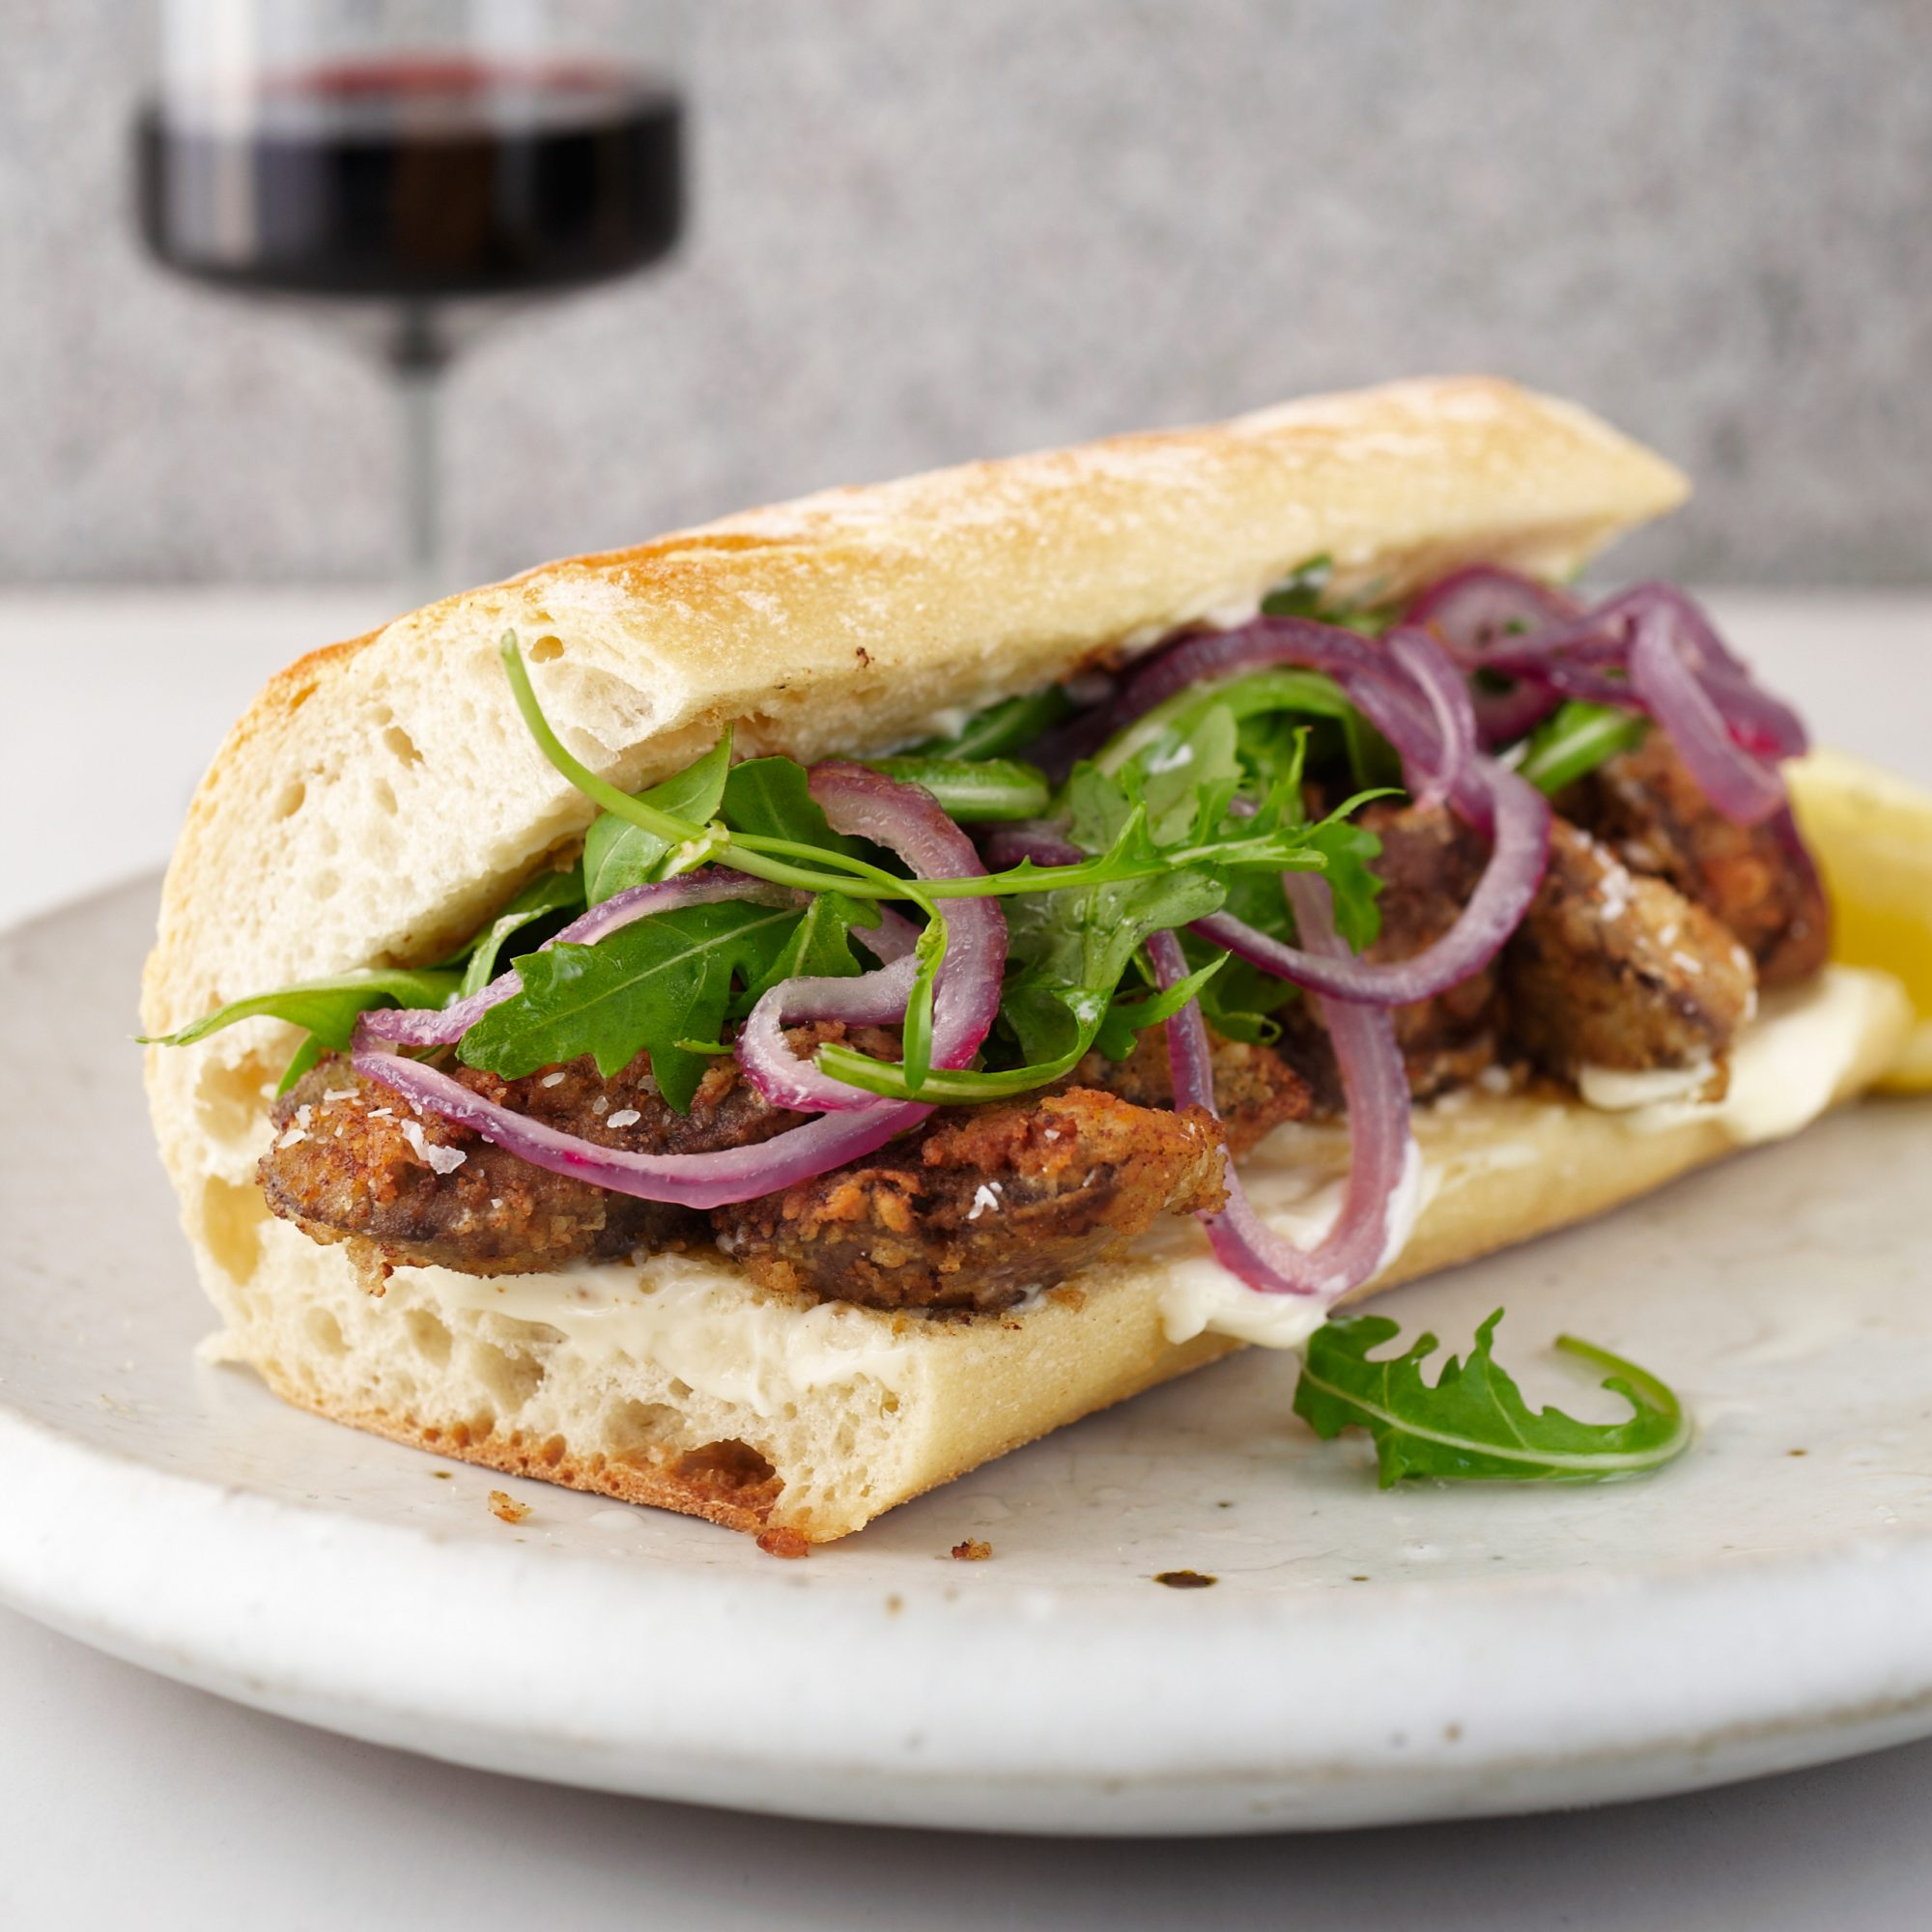 201011-r-chicken-liver-po-boy.jpg